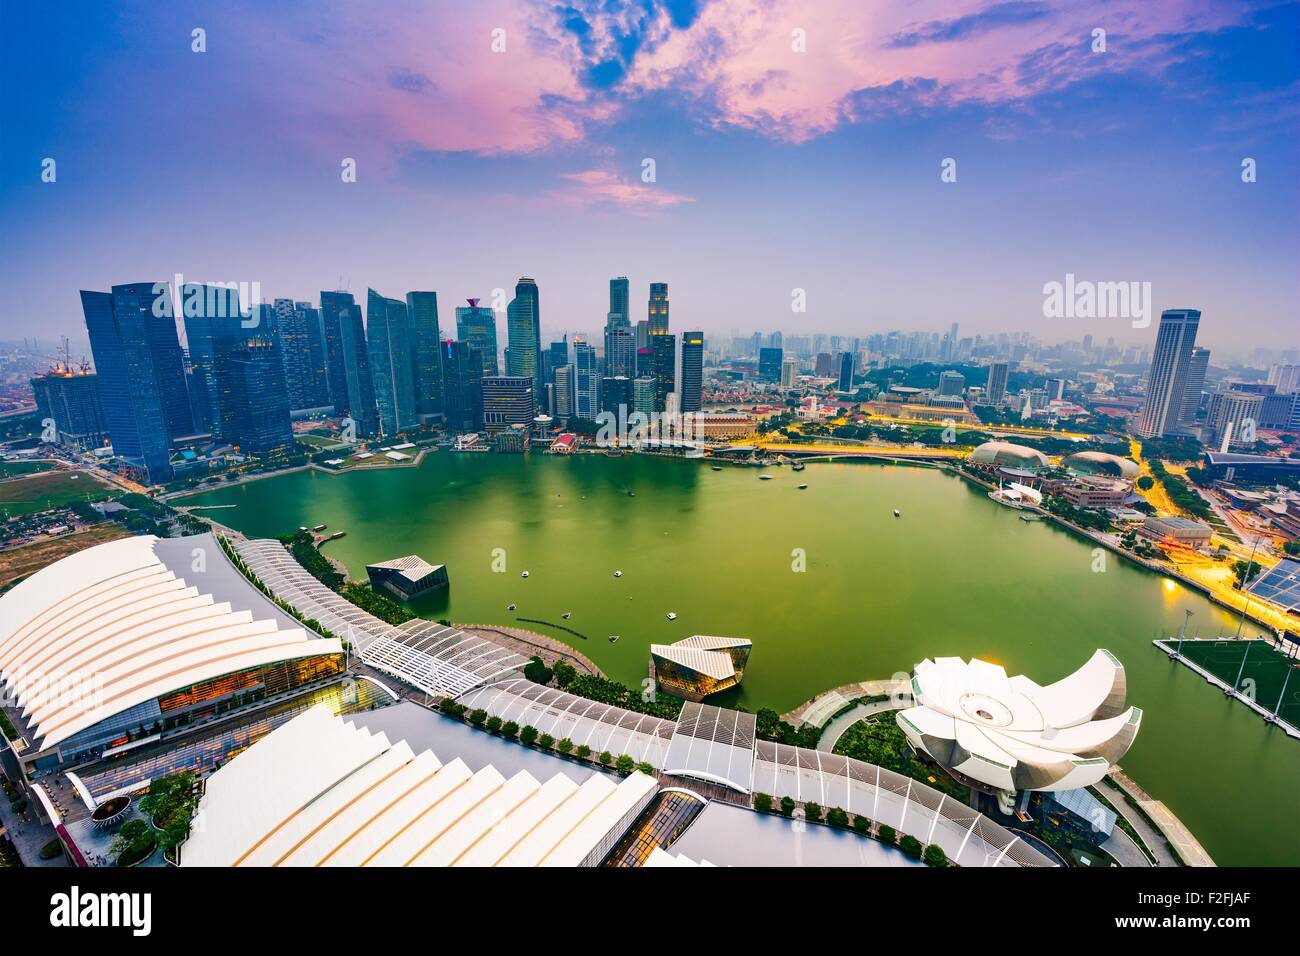 Marina Bay, Singapur aerial Skyline. Stockbild